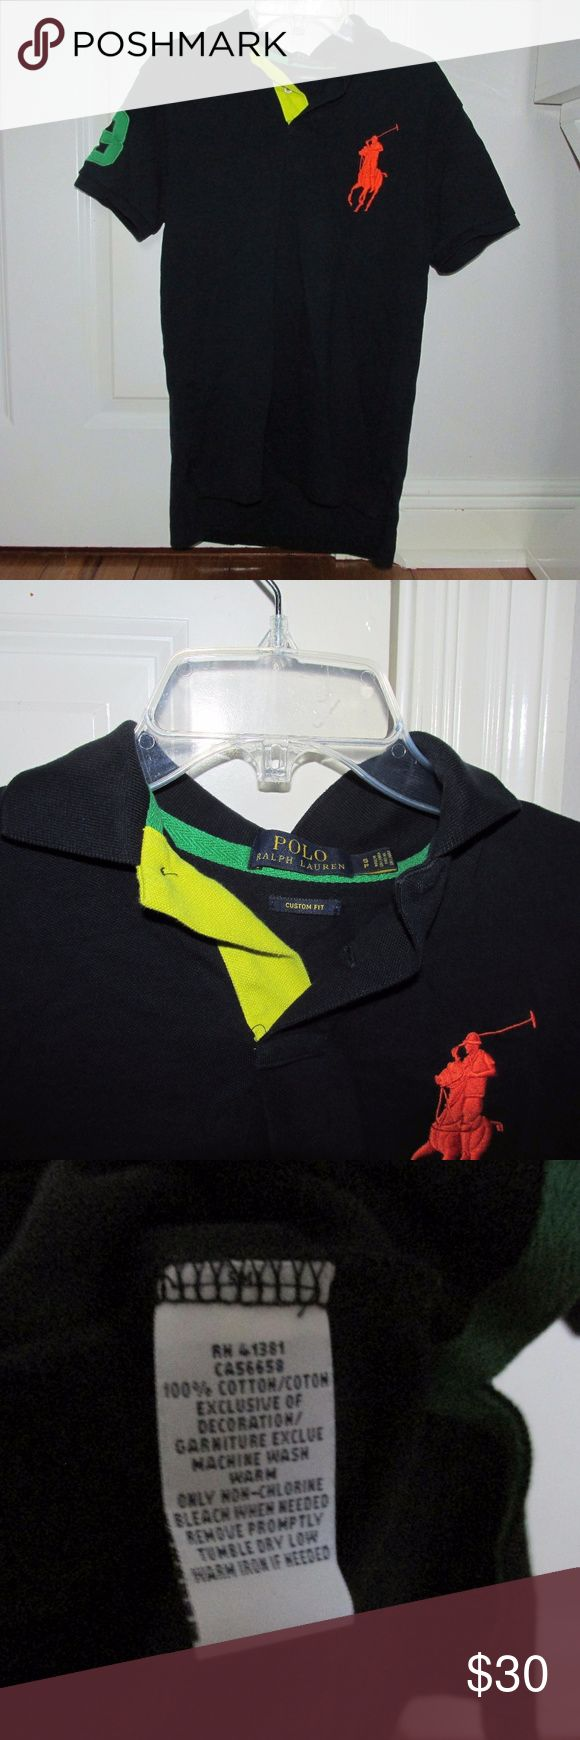 Boys Custom Fit Ralph Lauren Polo Collared Shirt **NOT furry friend free home Gently used, practically new size small petite polo shirt (I believe my brother wore this around 11 or 12 for more of a size reference). In nice black color with orange logo on the front, green number on the right sleeve, and yellow collar flap on the right also. No stains or flaws. Polo by Ralph Lauren Shirts & Tops Polos